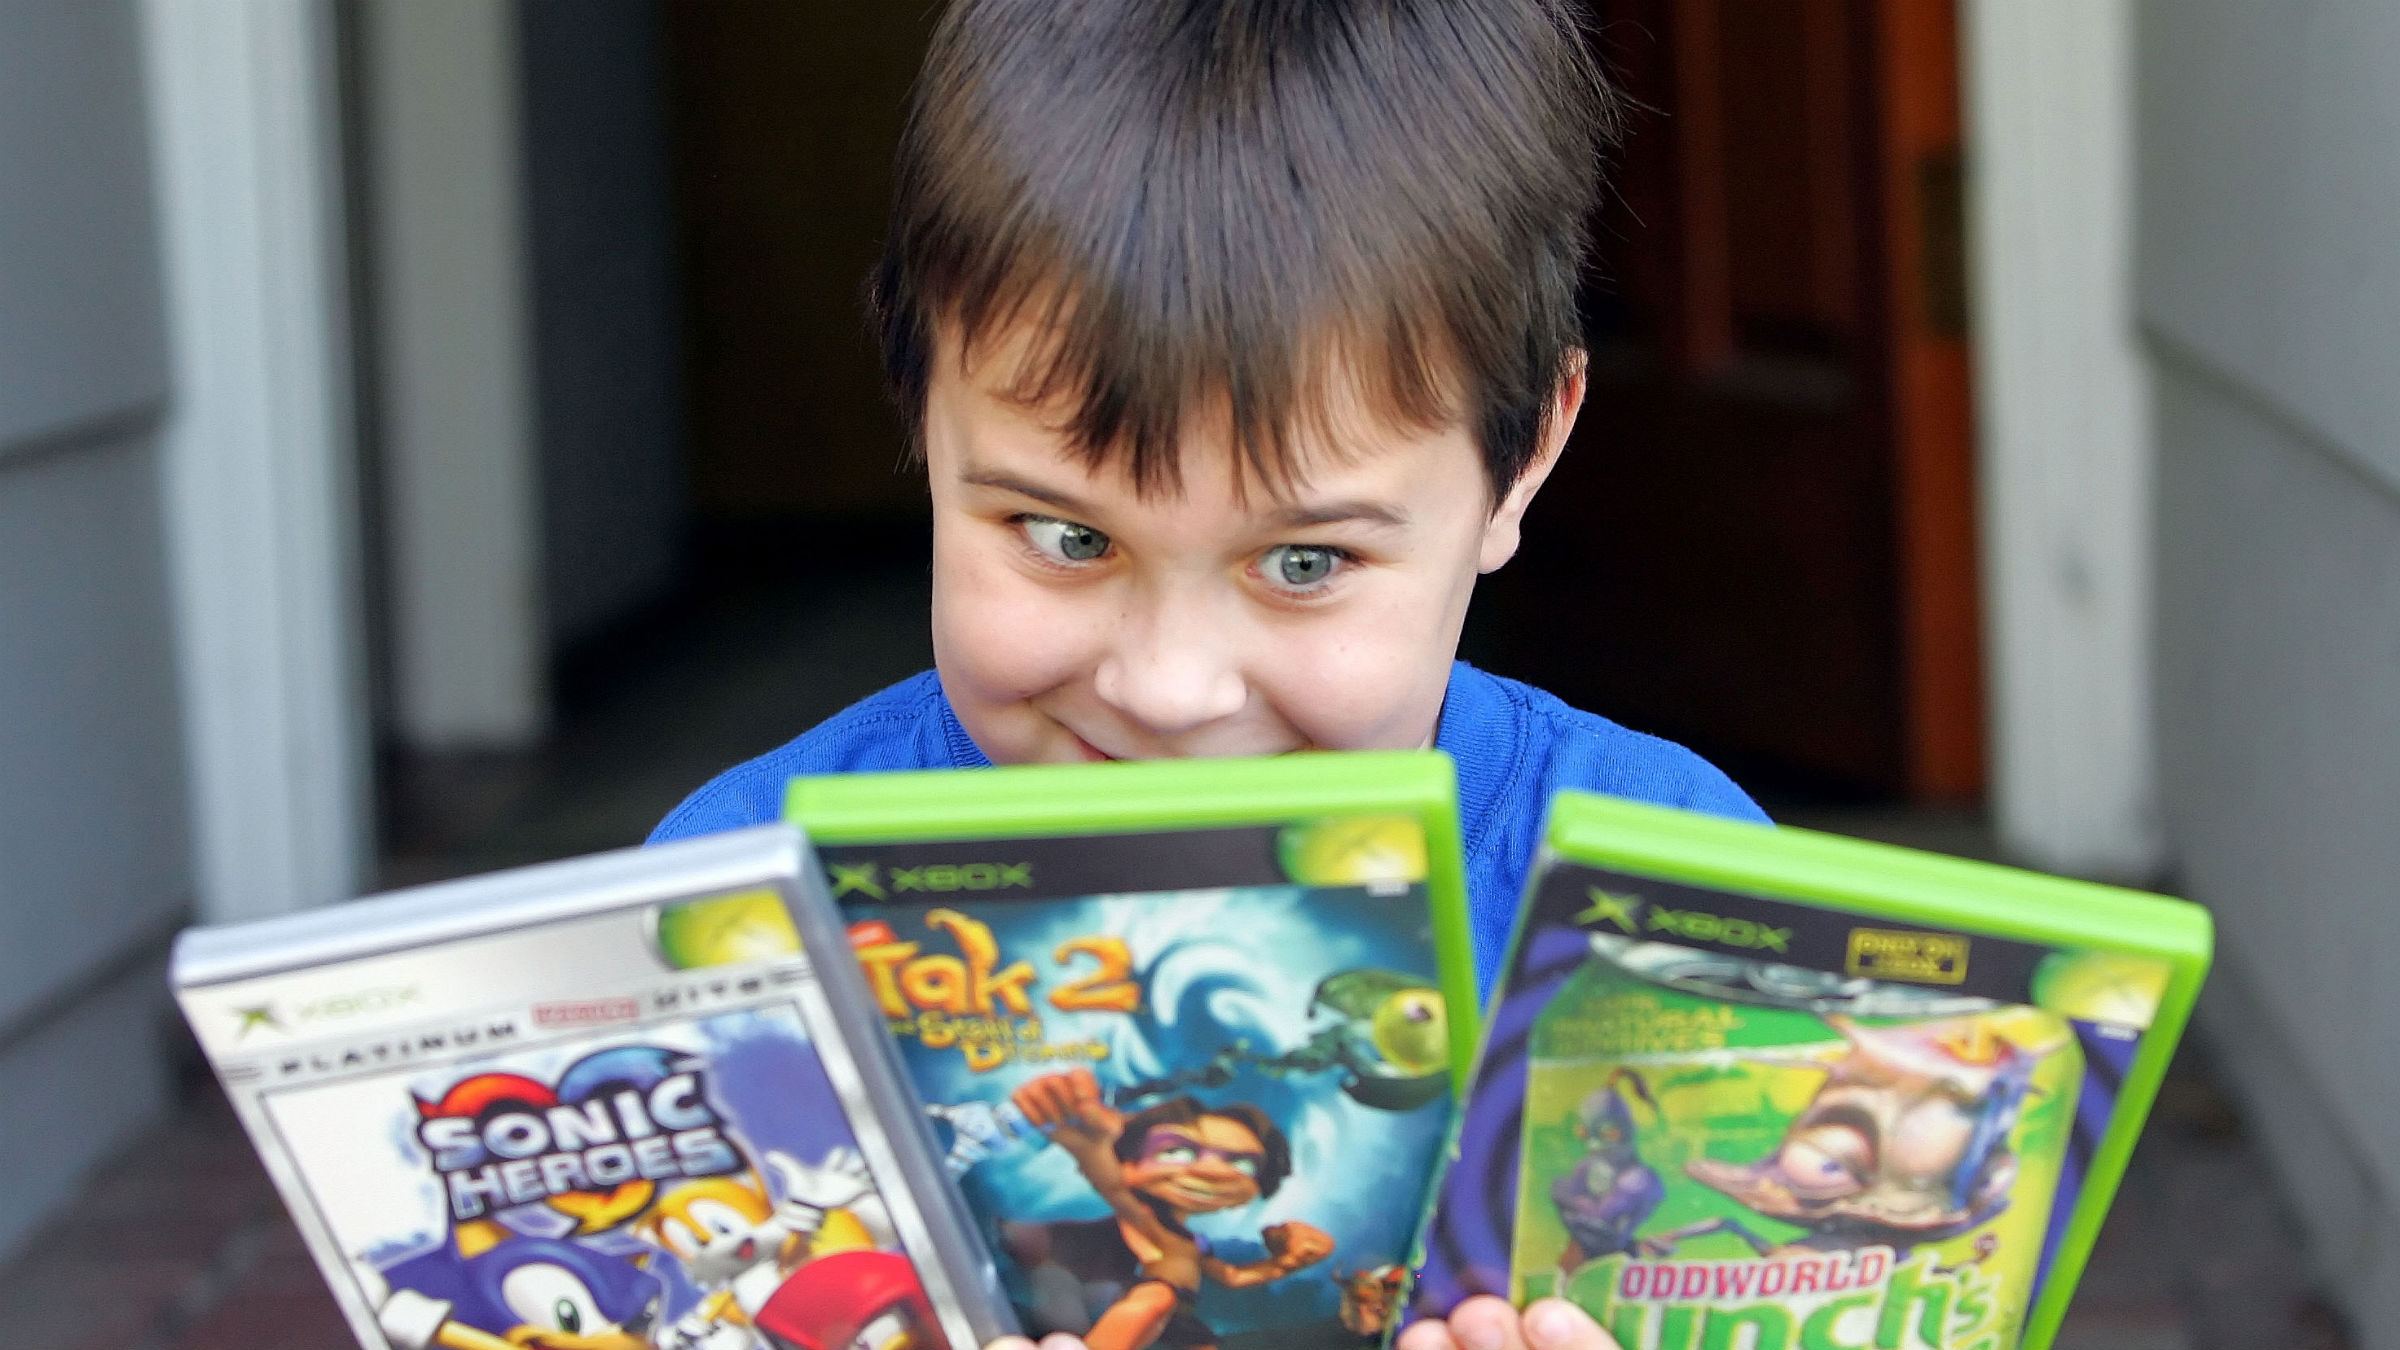 Boy with video games in his hands